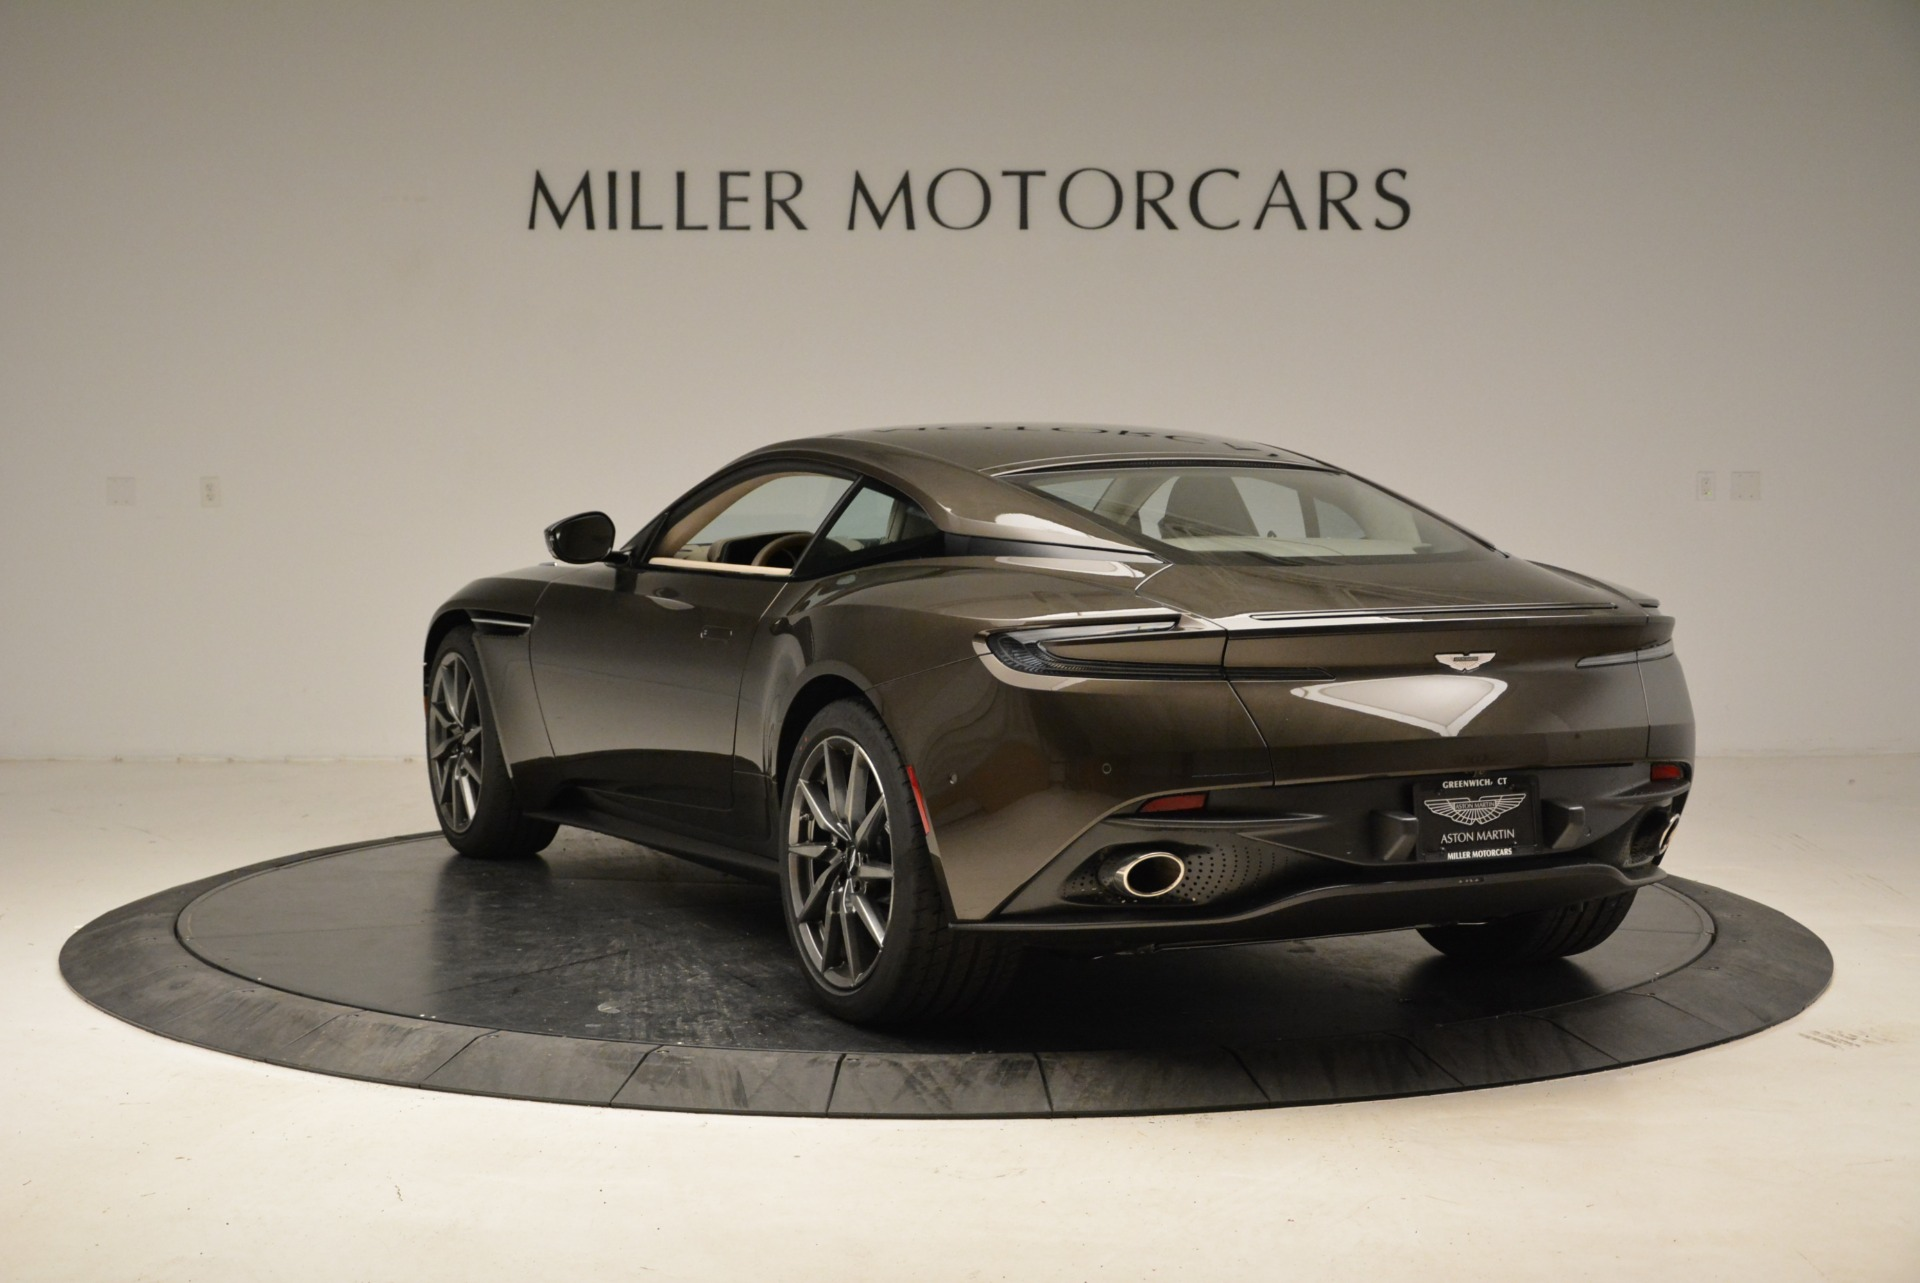 New 2018 Aston Martin DB11 V12 For Sale In Westport, CT 1904_p5